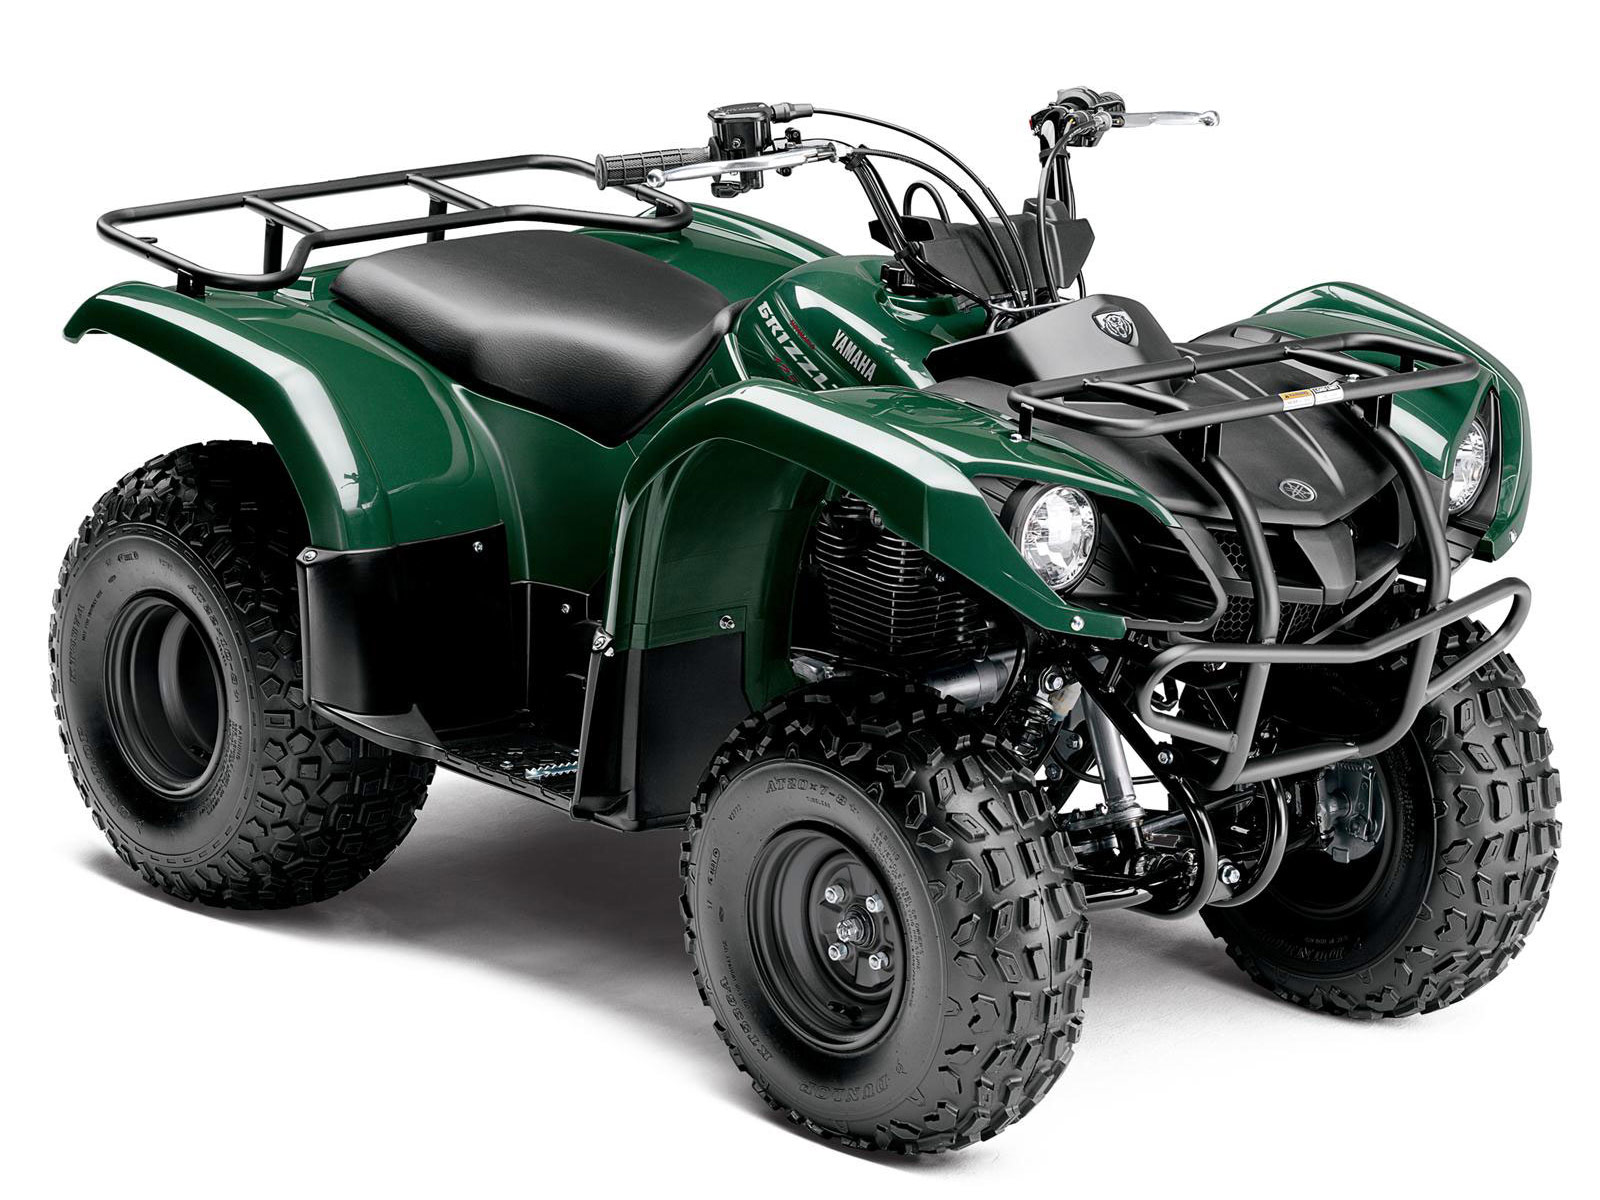 pin 2012 yamaha grizzly yfm 700 se lof approval motorcycle. Black Bedroom Furniture Sets. Home Design Ideas